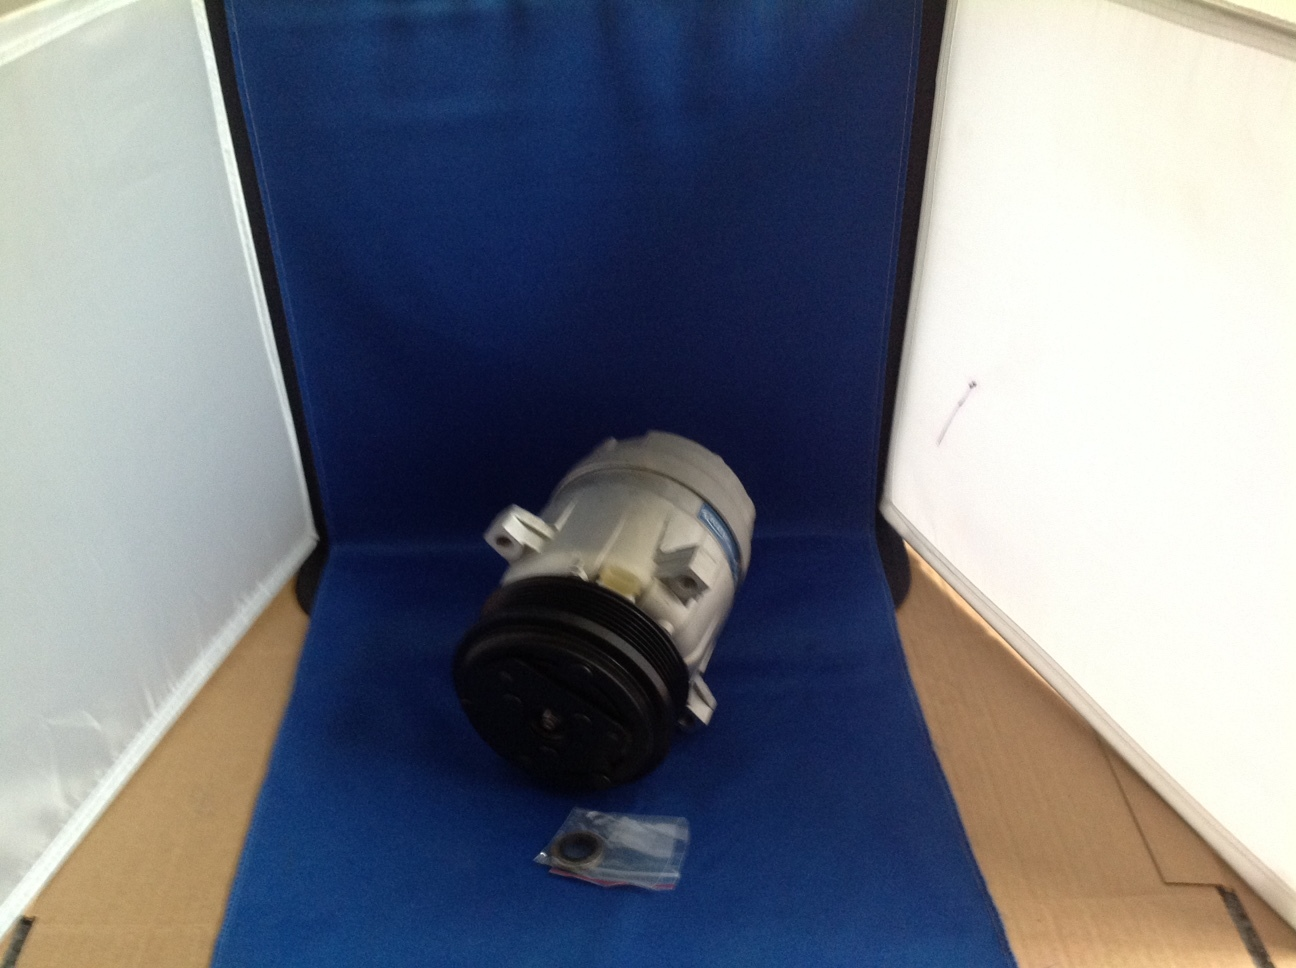 99-03 GMC Sonoma 2.2 Pickup Truck AC Air Conditioning Compressor with Clutch